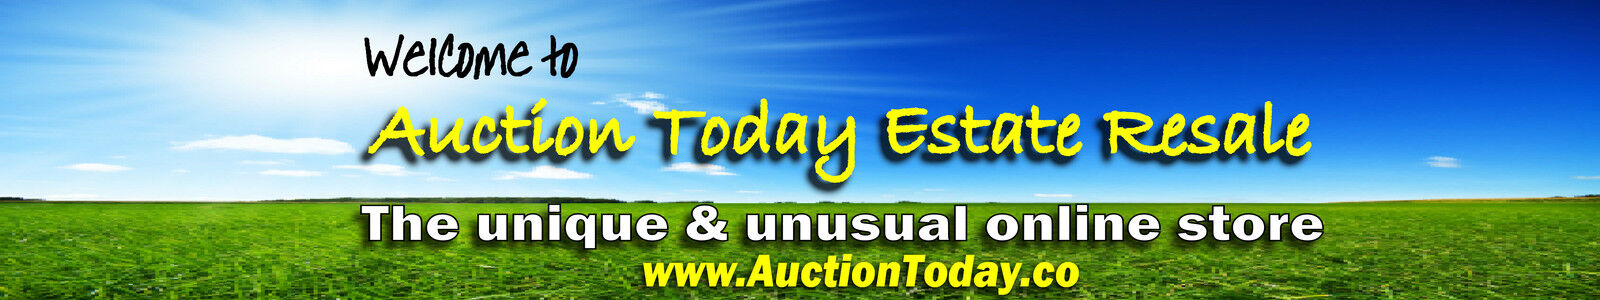 www.AuctionToday.co